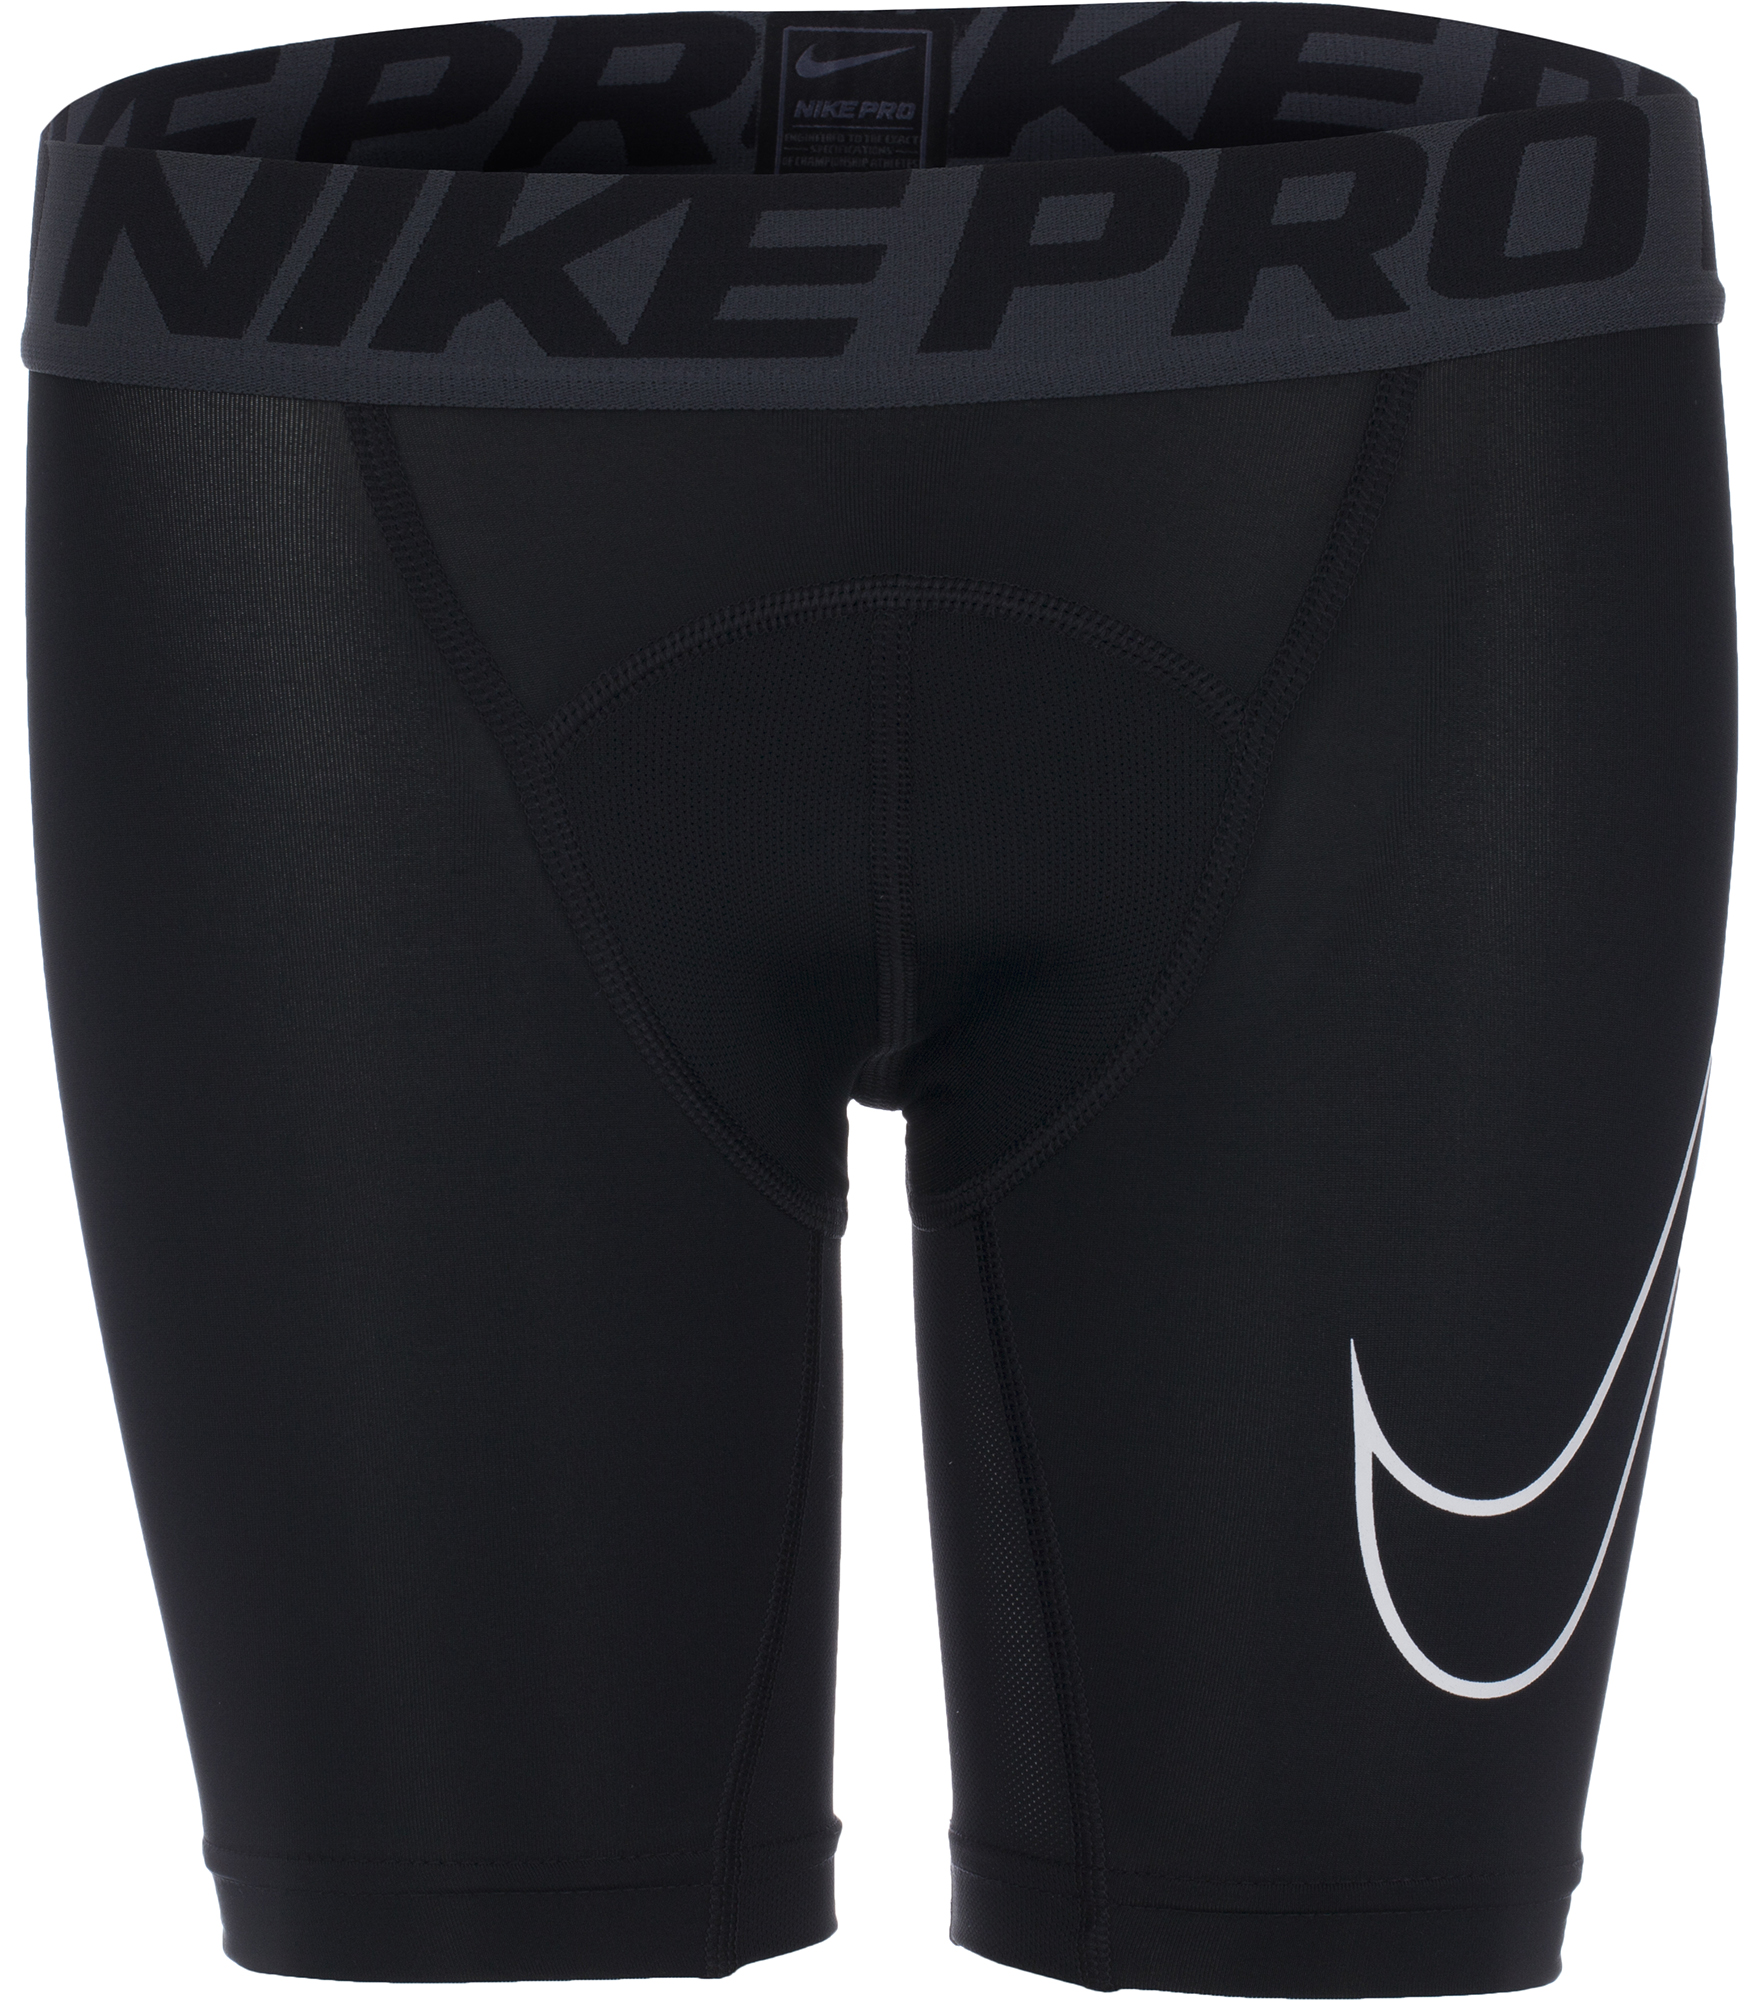 Nike Шорты для мальчиков Nike Pro Cool HBR Compression, размер 137-147 цена